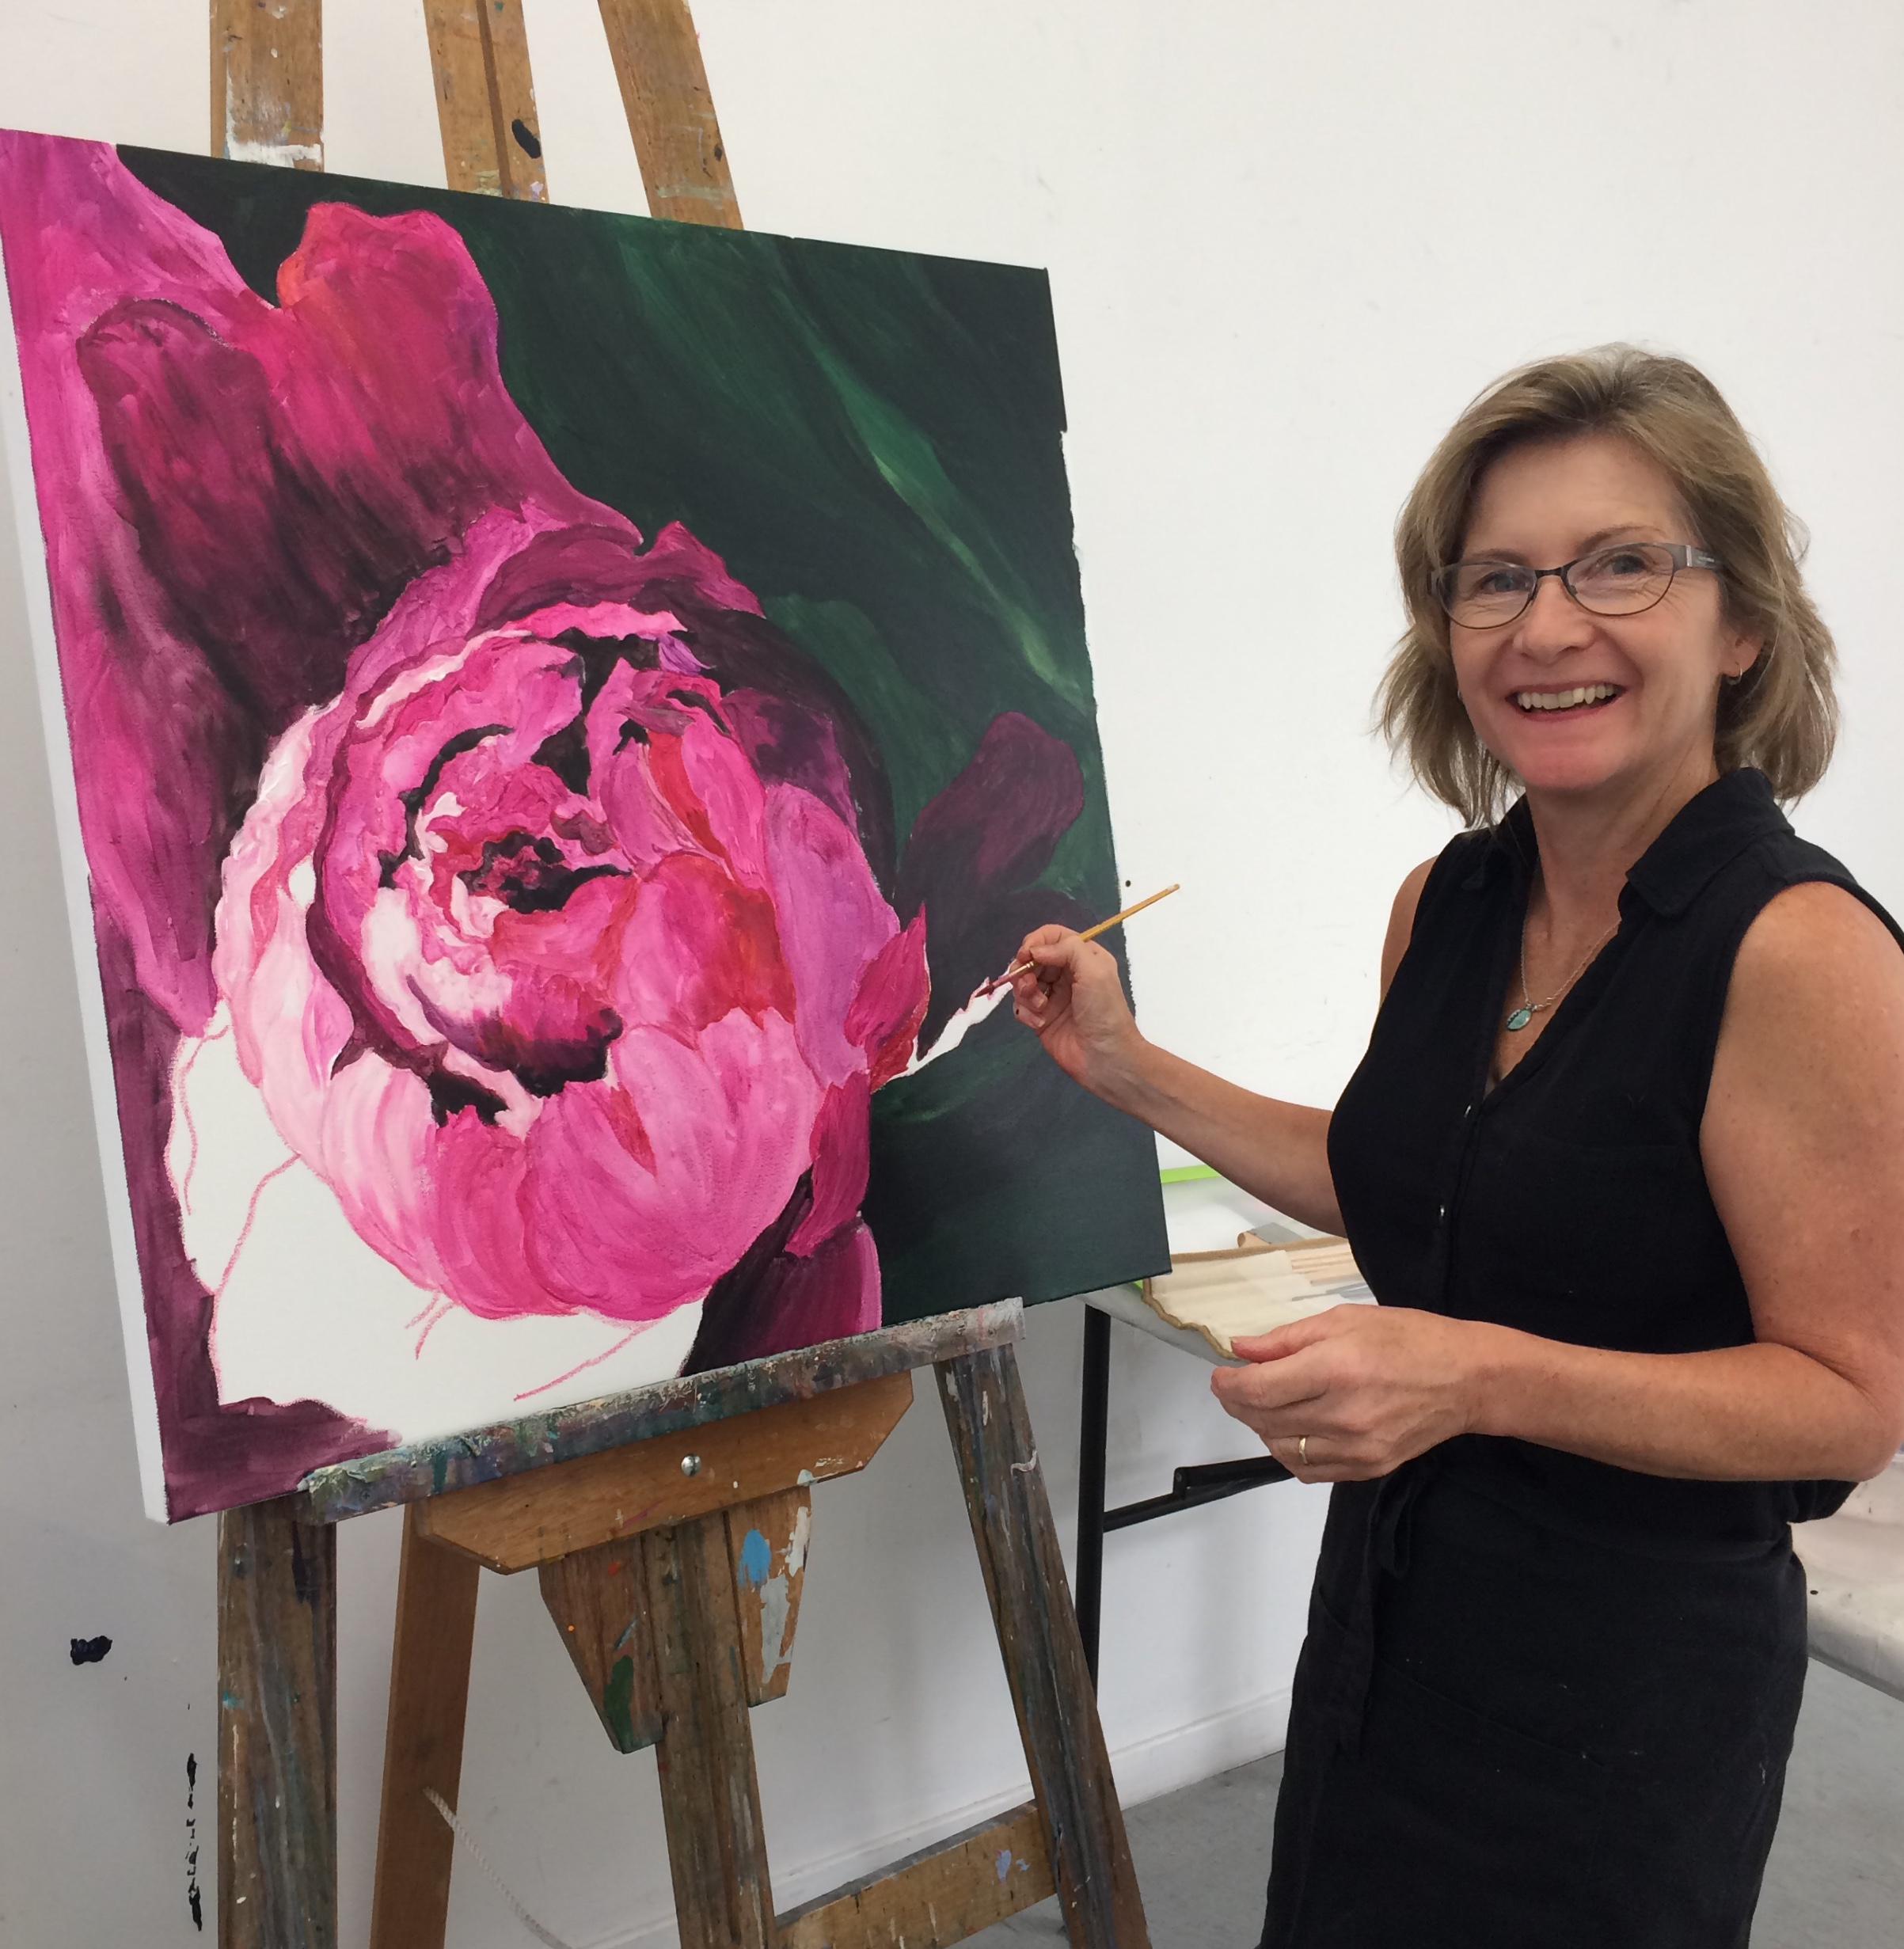 Macro Floral Painting - Create your own, beautiful, large-scale floral painting. Tracey has many years of art experience and will guide beginner and intermediate artists through the steps to create your own art work.Studio 3, BDAS. 1 Short St., Bowral.10.00 am - 4.00 pm, Sunday 28 April 2019.Cost: $130For enquiries and to enrol contact Tracey onE: traceymillermail@gmail.com